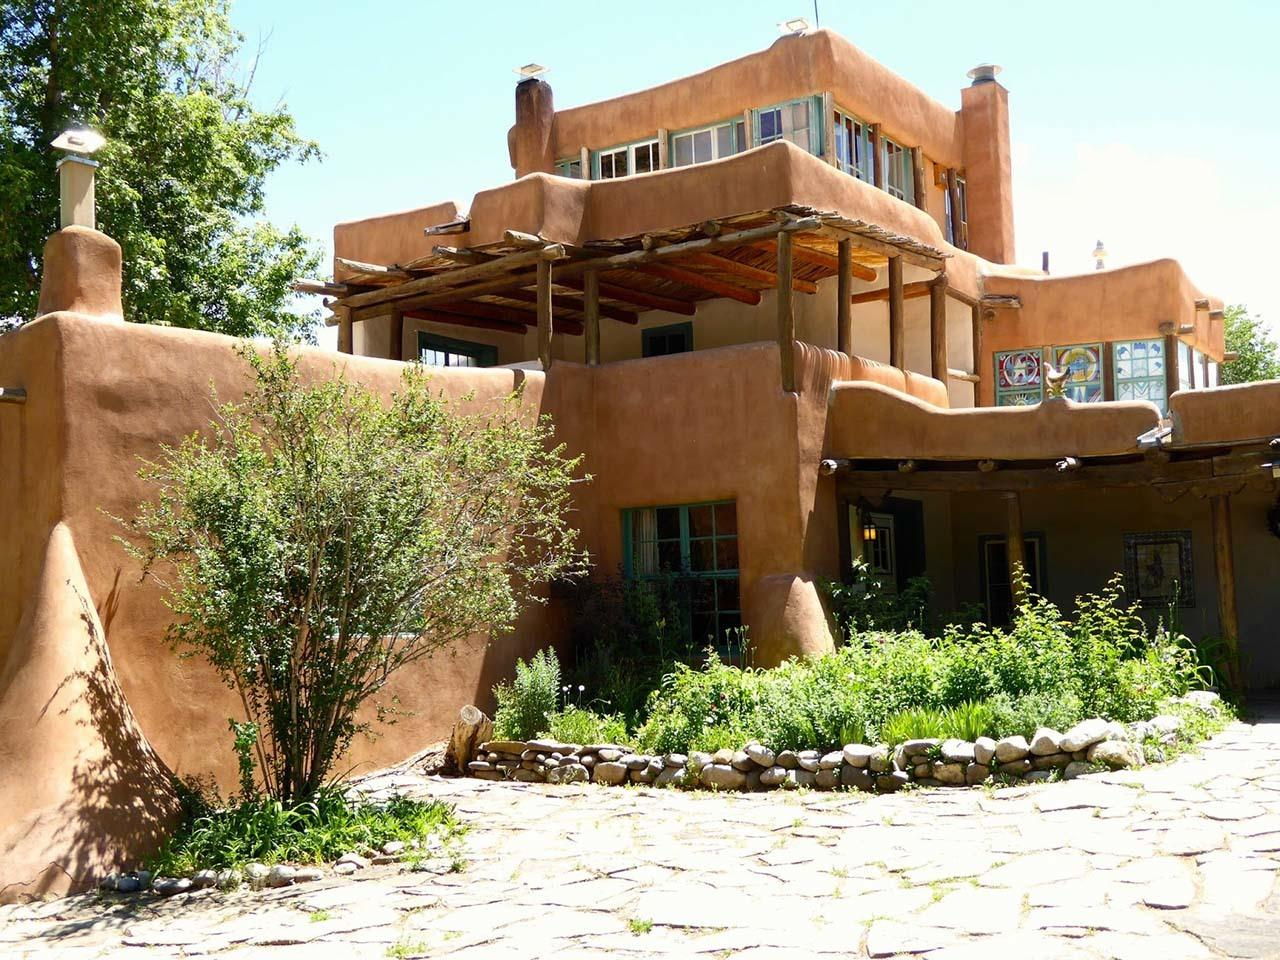 #Taos attractions #Mabel Dodge Luhan House Historic Hotel #Taos #New Mexico